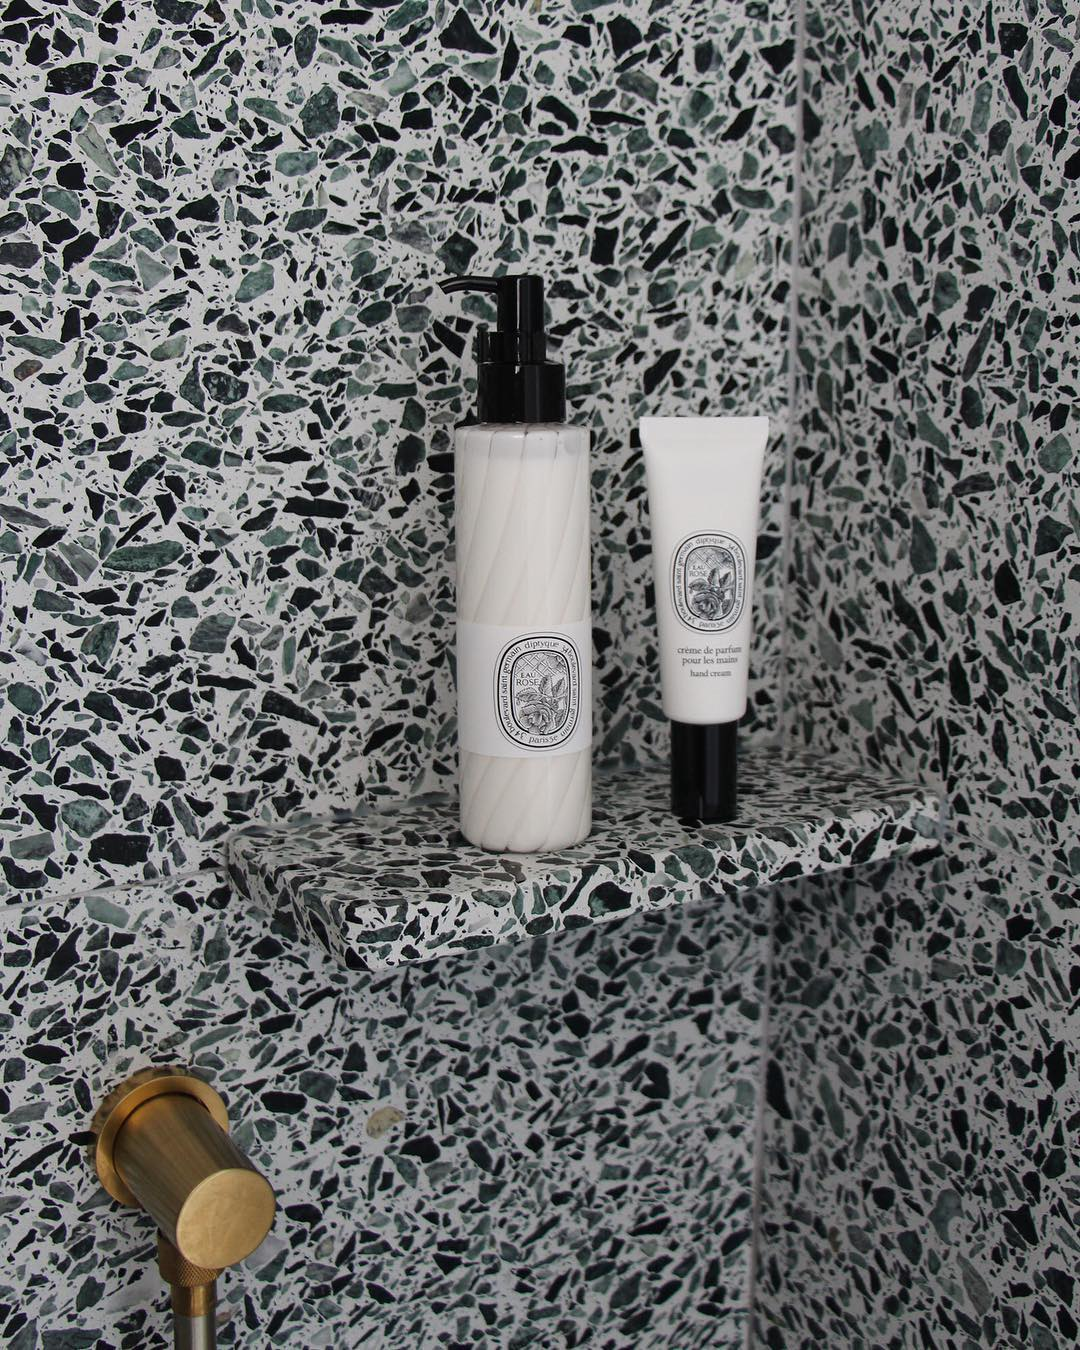 Image Courtesy: Diptyque